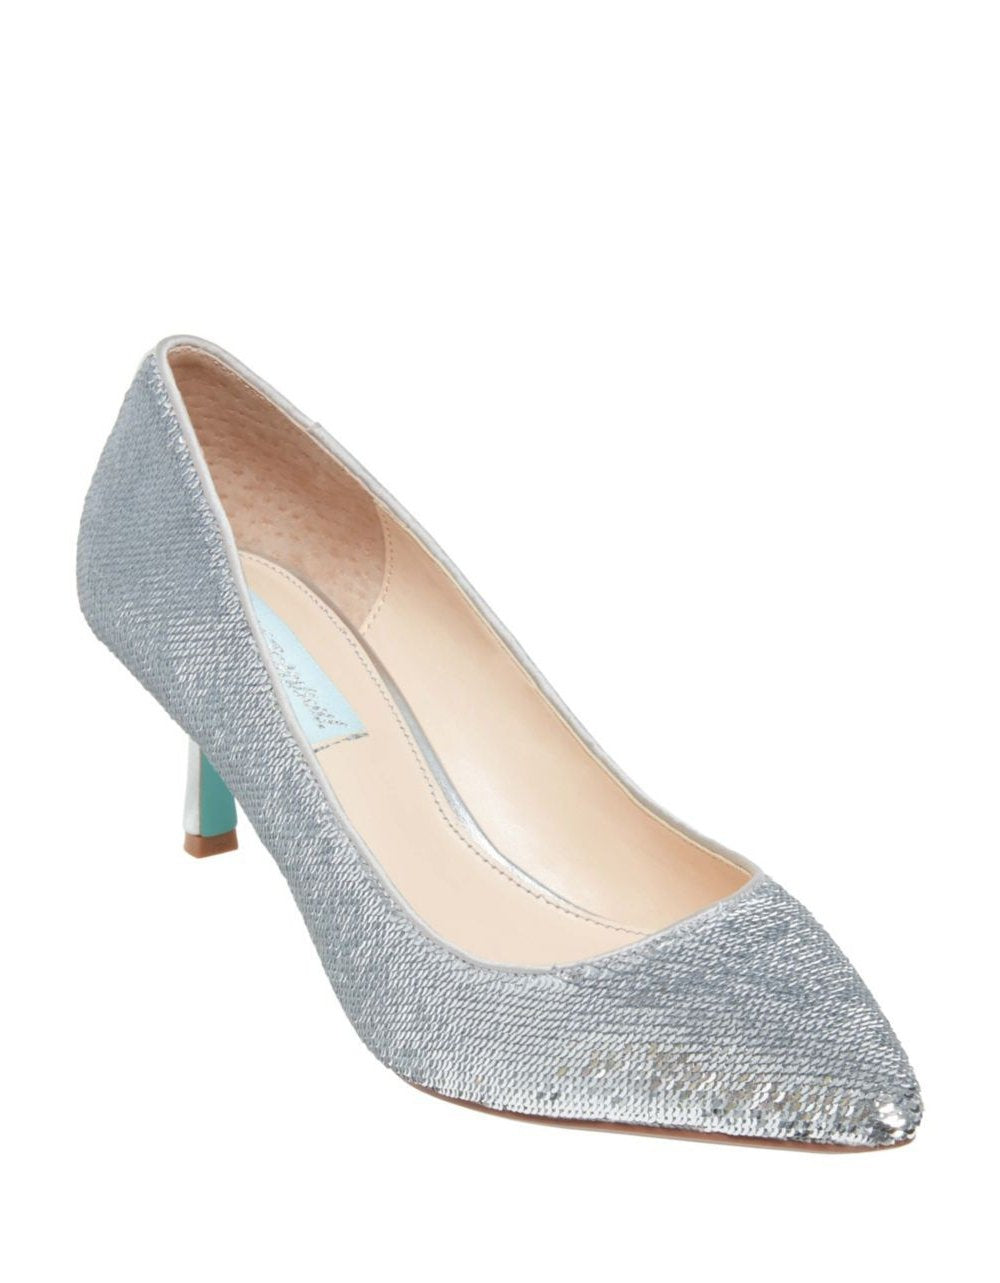 SB-KAMIE SILVER SEQUIN - SHOES - Betsey Johnson